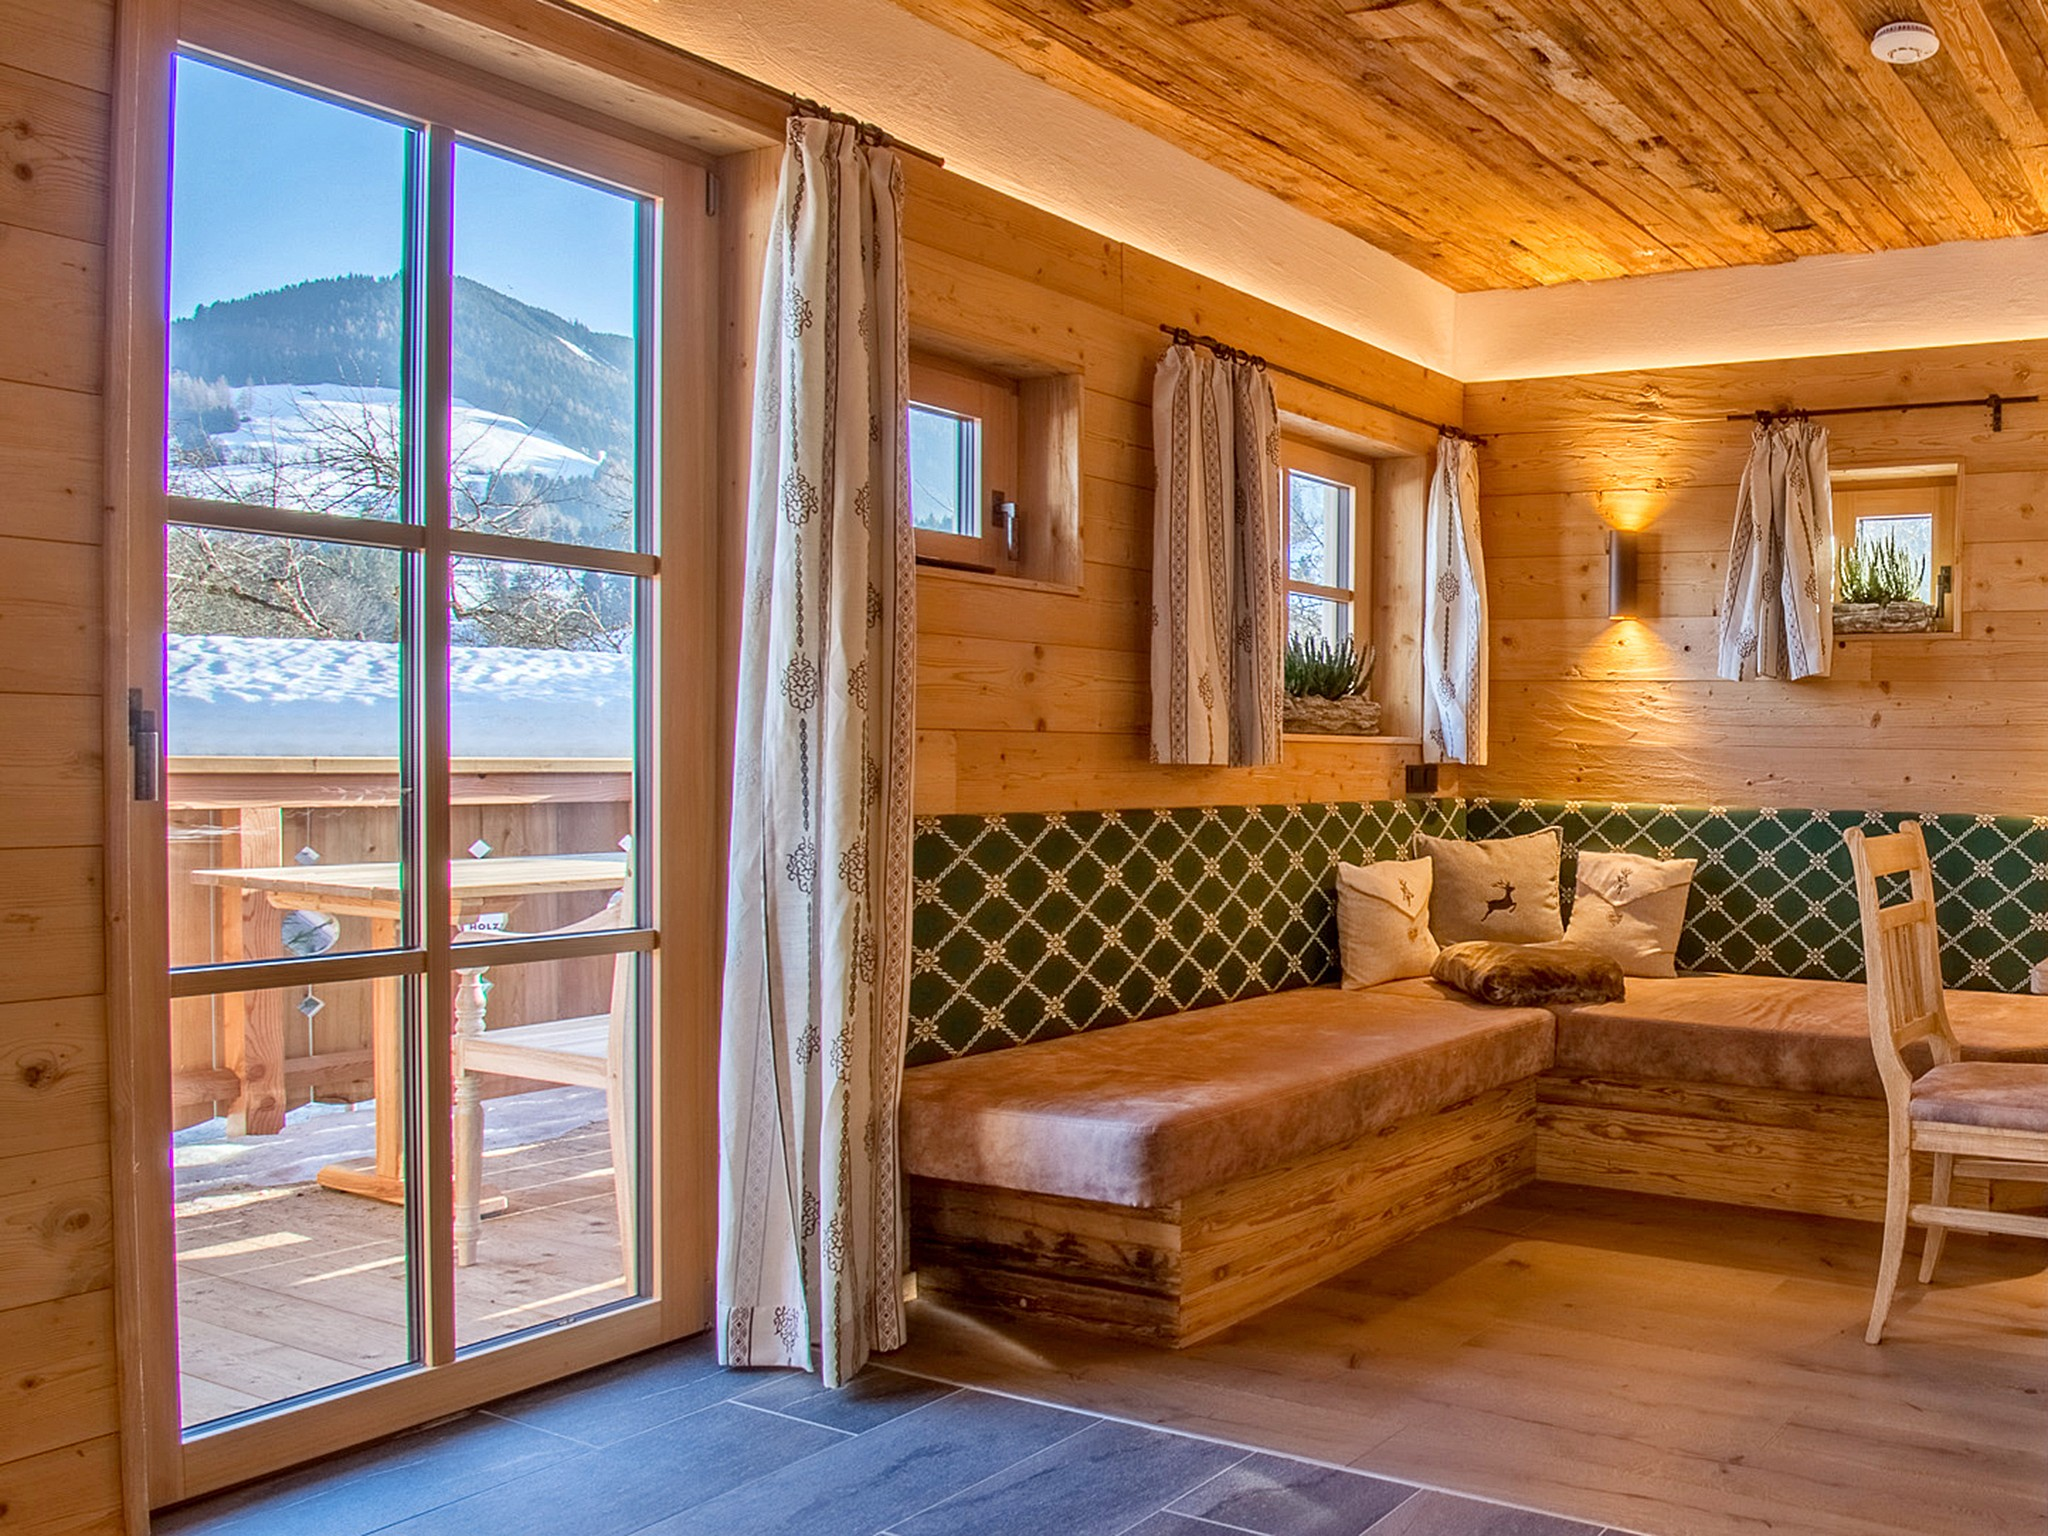 Mountain Lodge Leogang - Wohnraum